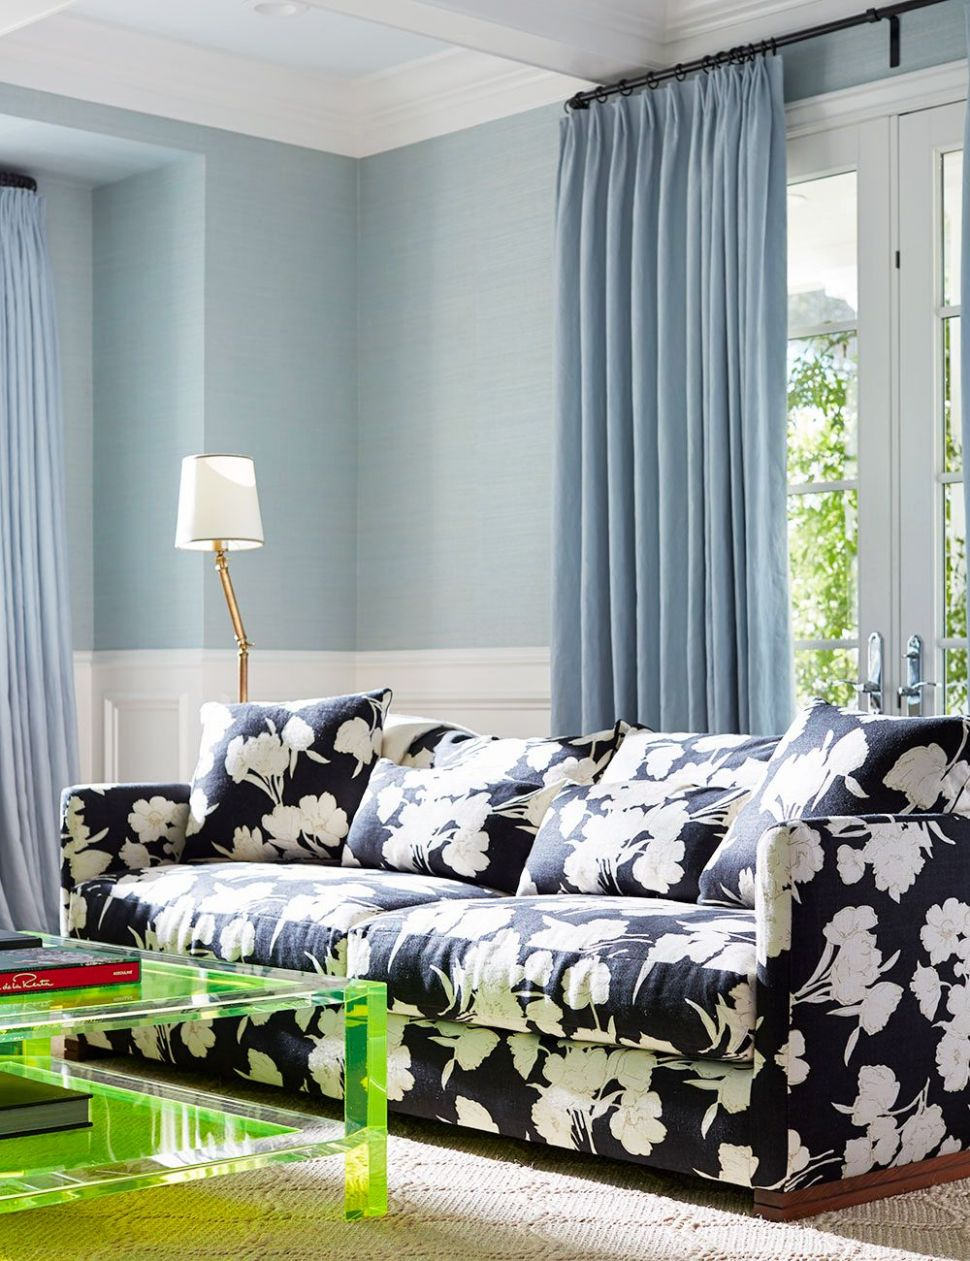 10 Best Living Room Color Ideas - Top Paint Colors for Living Rooms